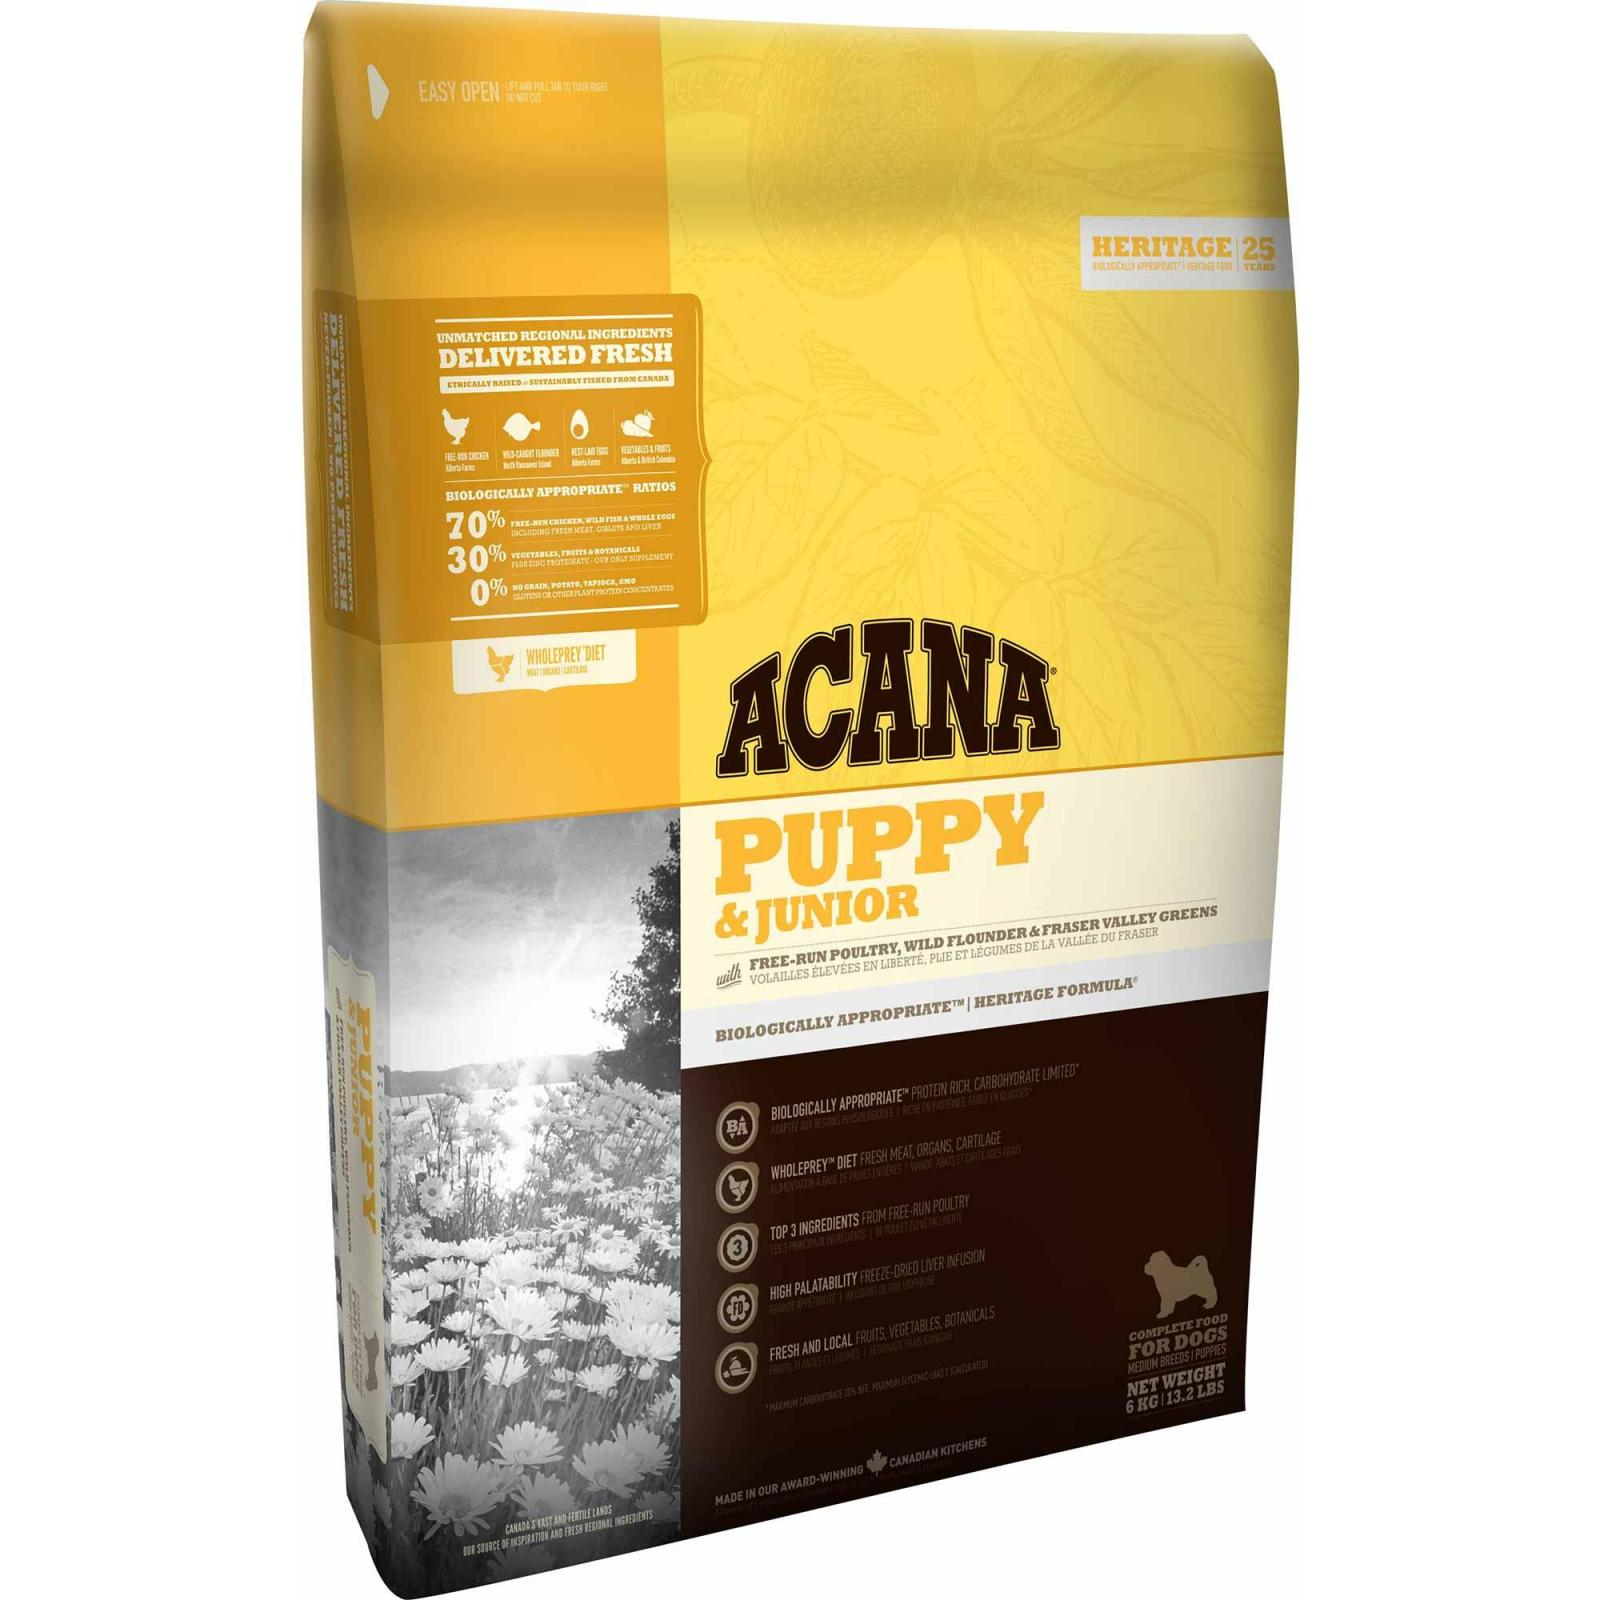 Acana Acana Heritage Puppy & Junior Dry Dog Food